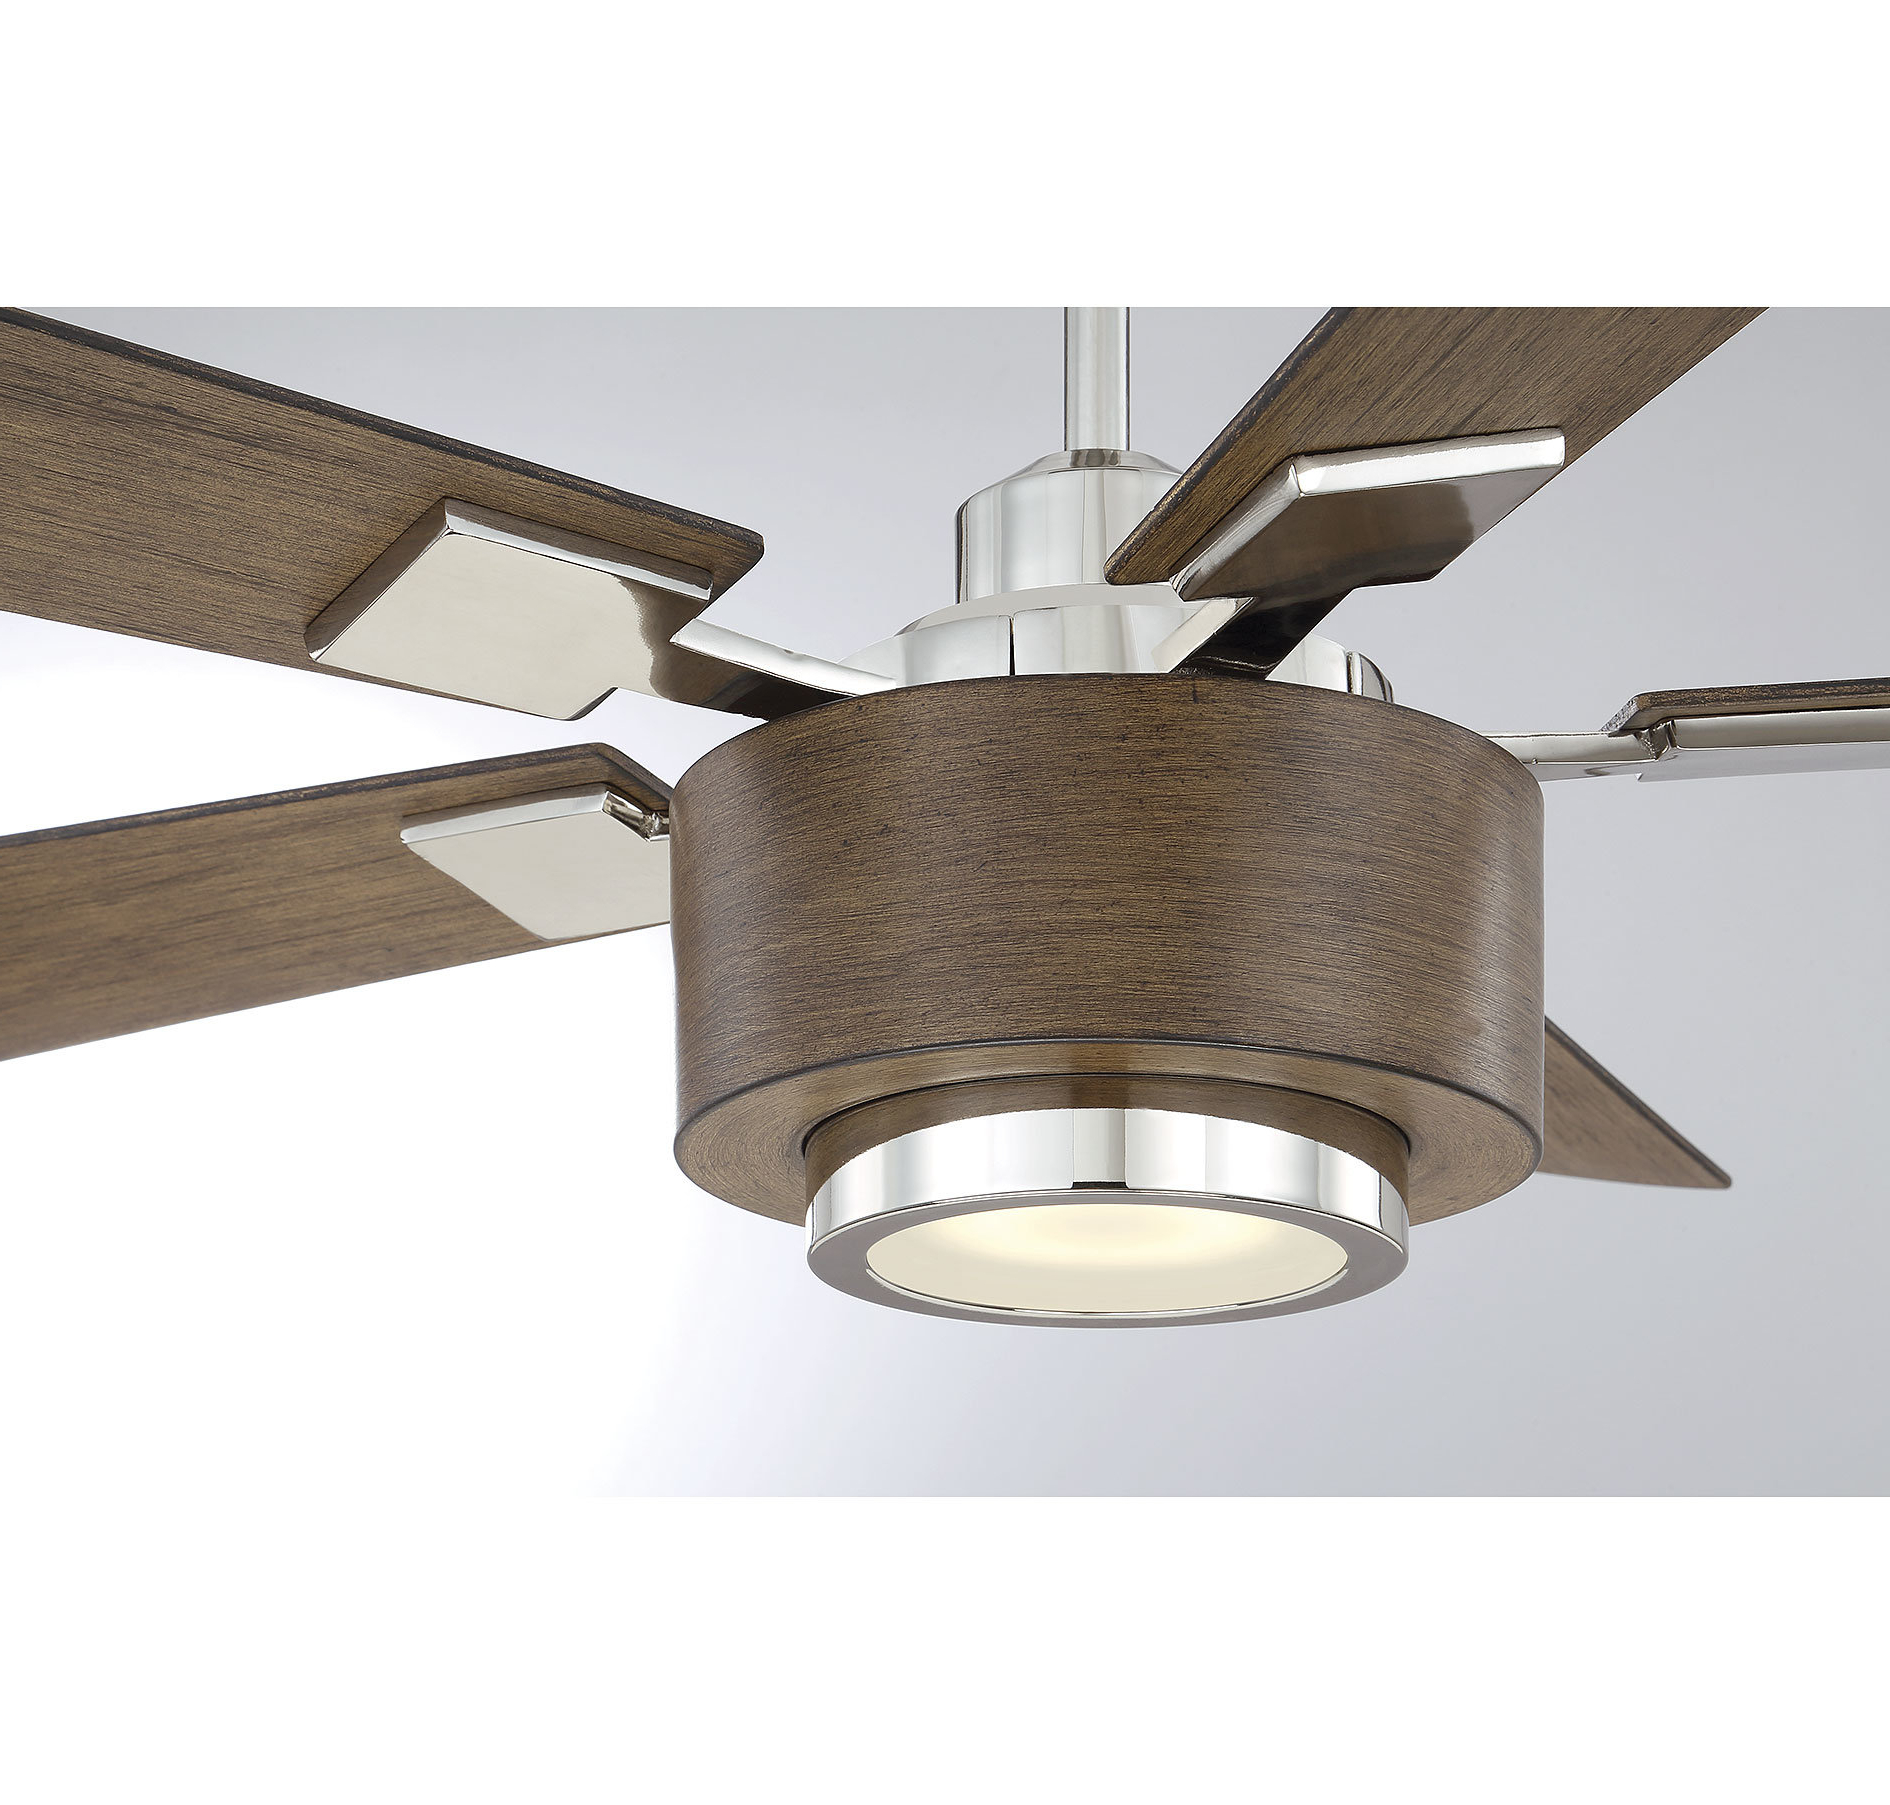 "St George 52"" Winchester 5 Blade Led Ceiling Fan With Remote In Most Current Bennett 5 Blade Led Ceiling Fans With Remote (View 19 of 20)"